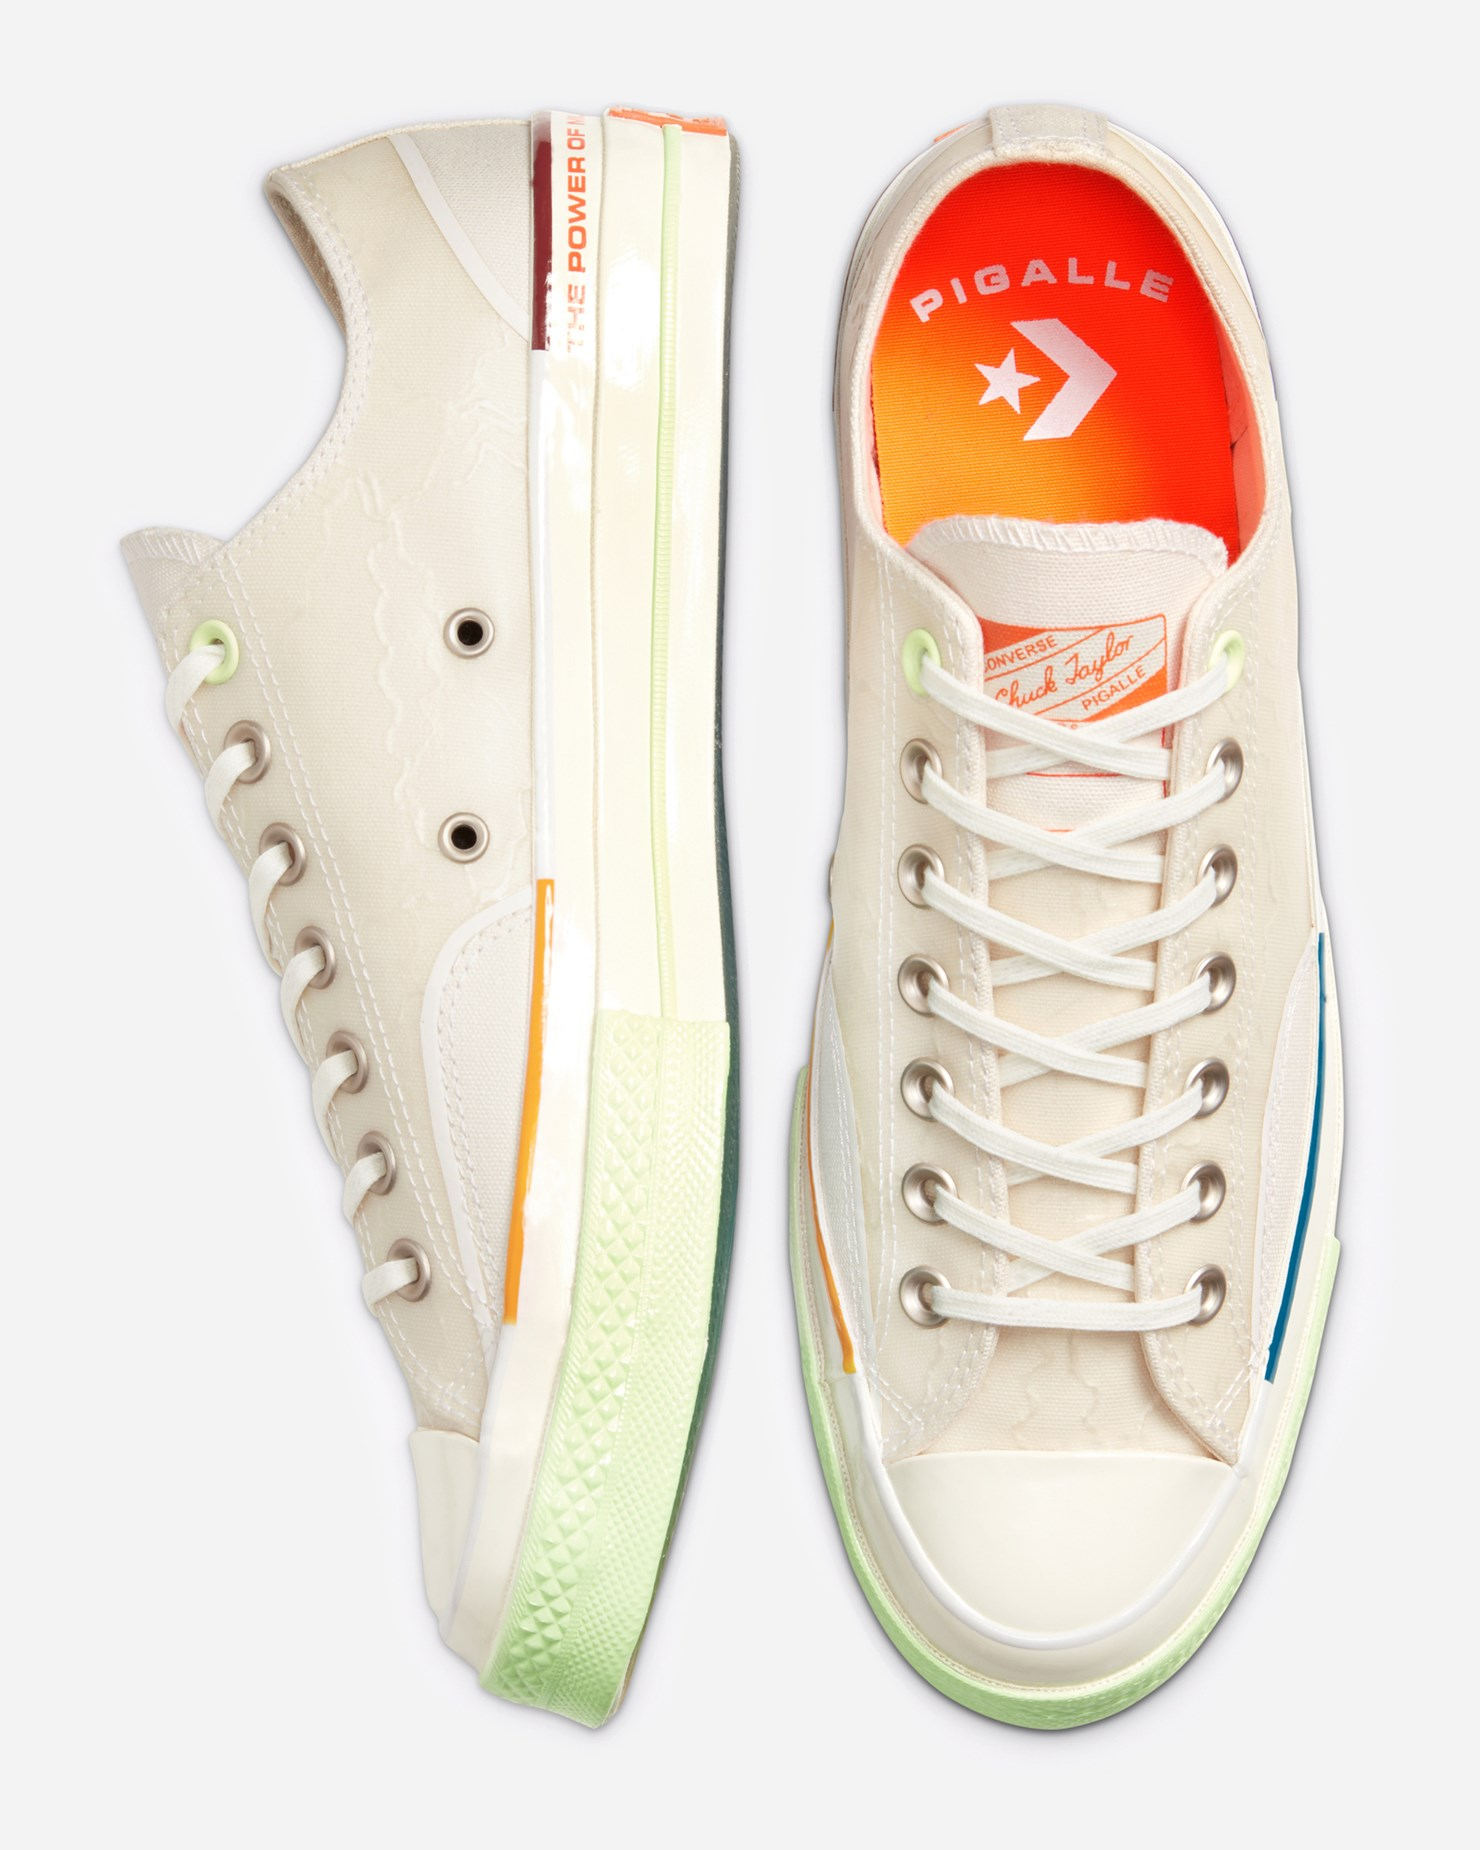 Converse x Pigalle Chuck 70 Low Top